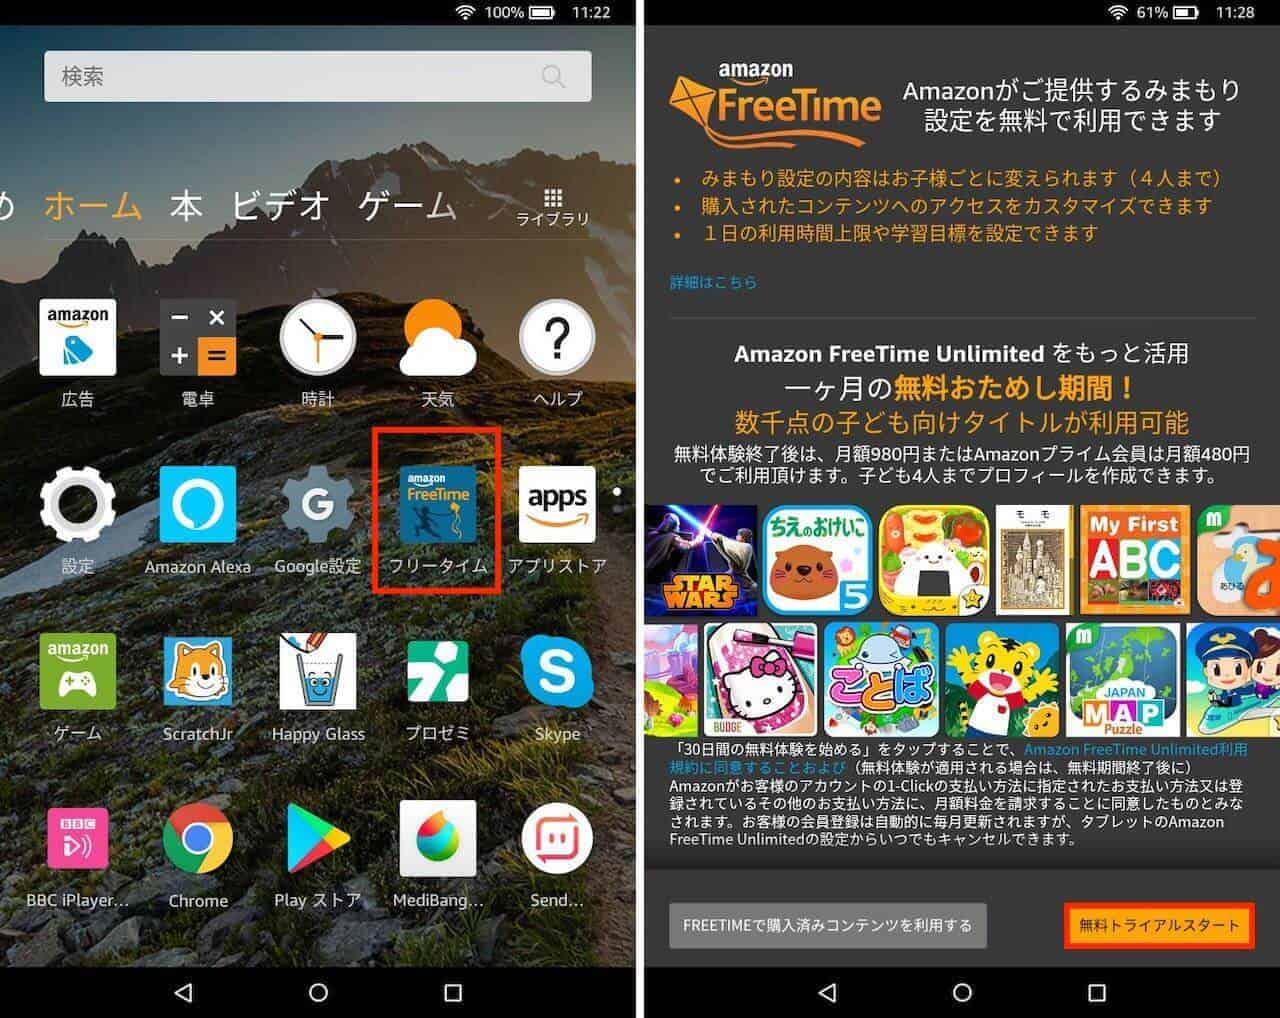 FreeTime Unlimitedの無料体験